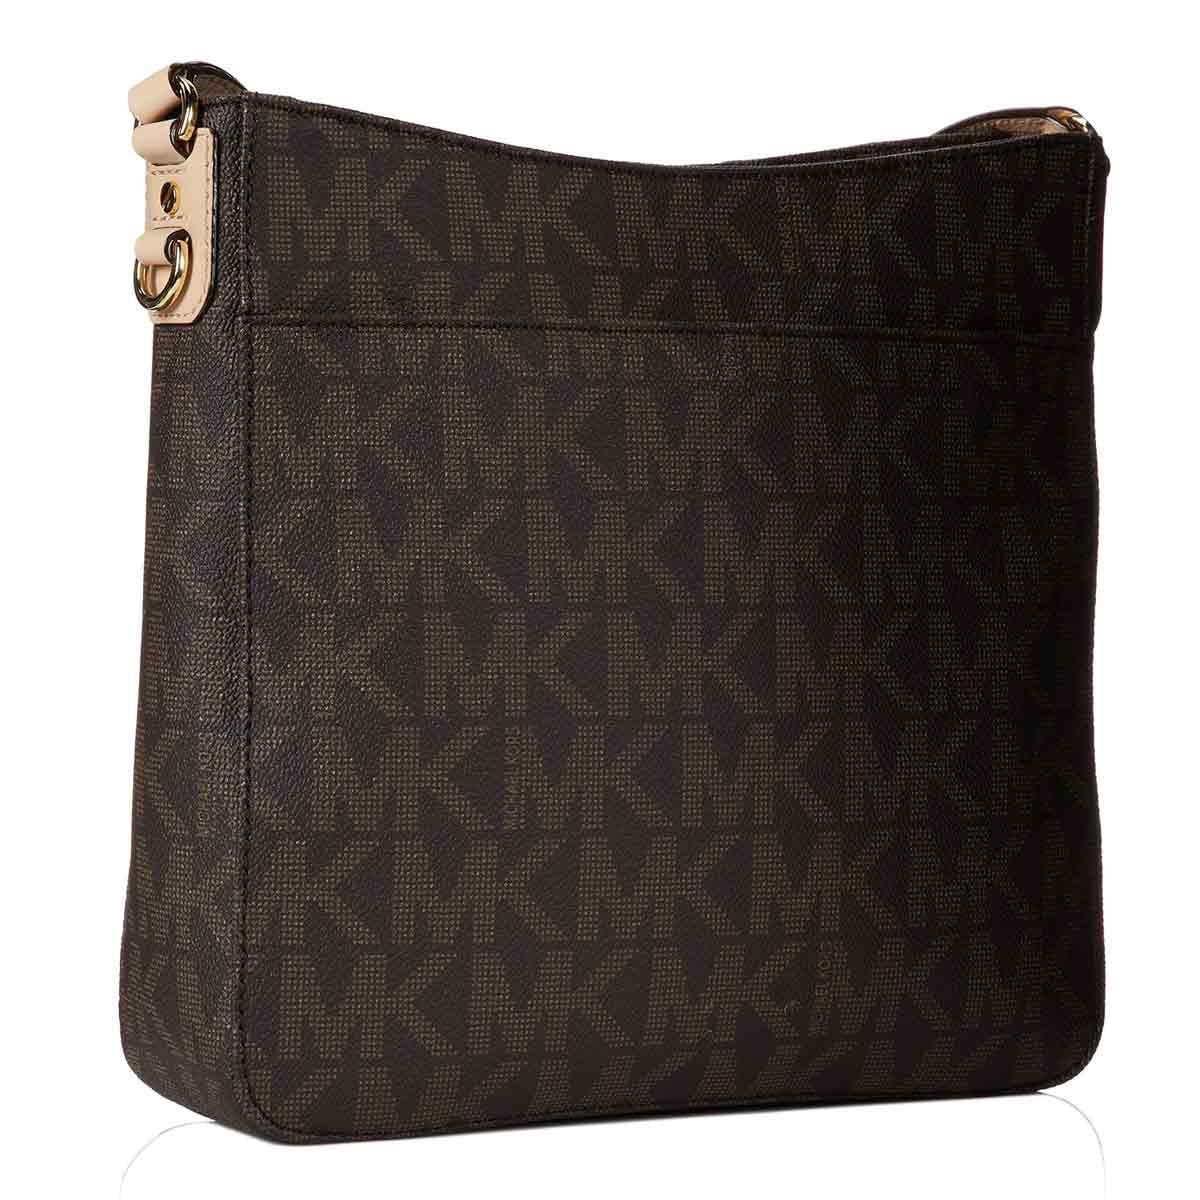 Michael Kors 30T2GTVM3B-200 Women's Jet Set Travel Large Brown PVC Logo Messenger Bag